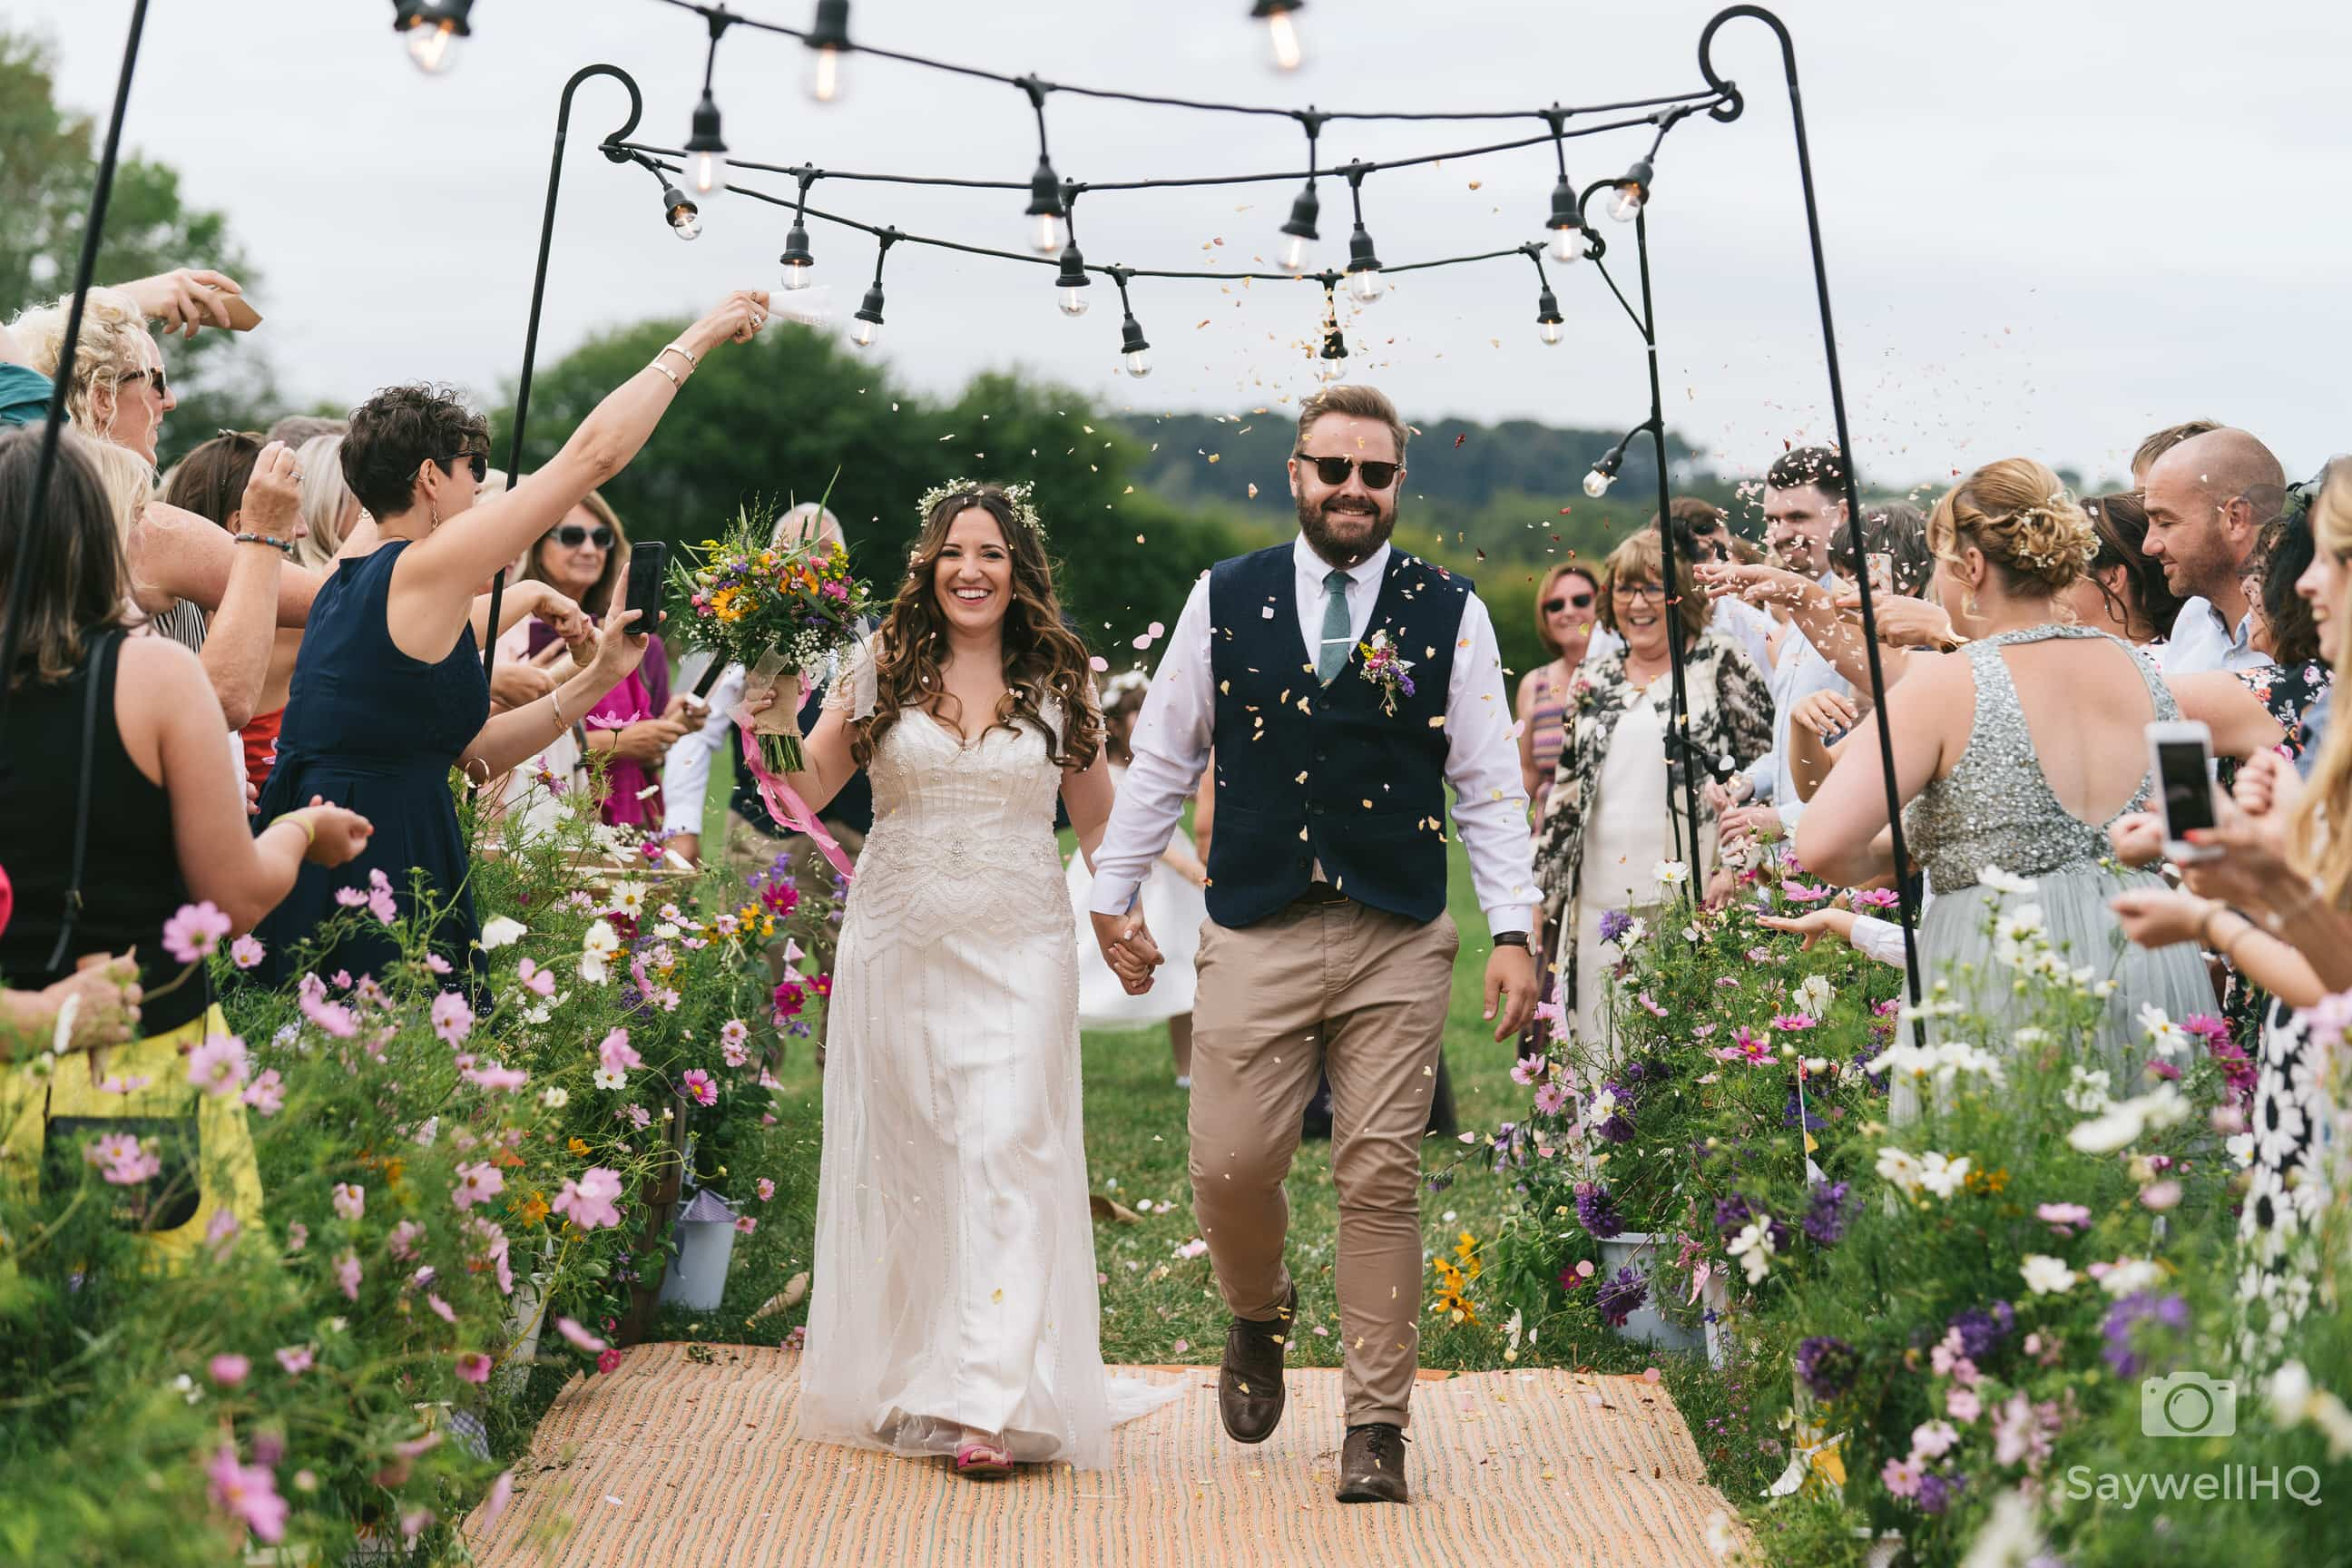 Wedding photography at Mapperley Farm - bride and groom confetti outside at a mapperley farm wedding